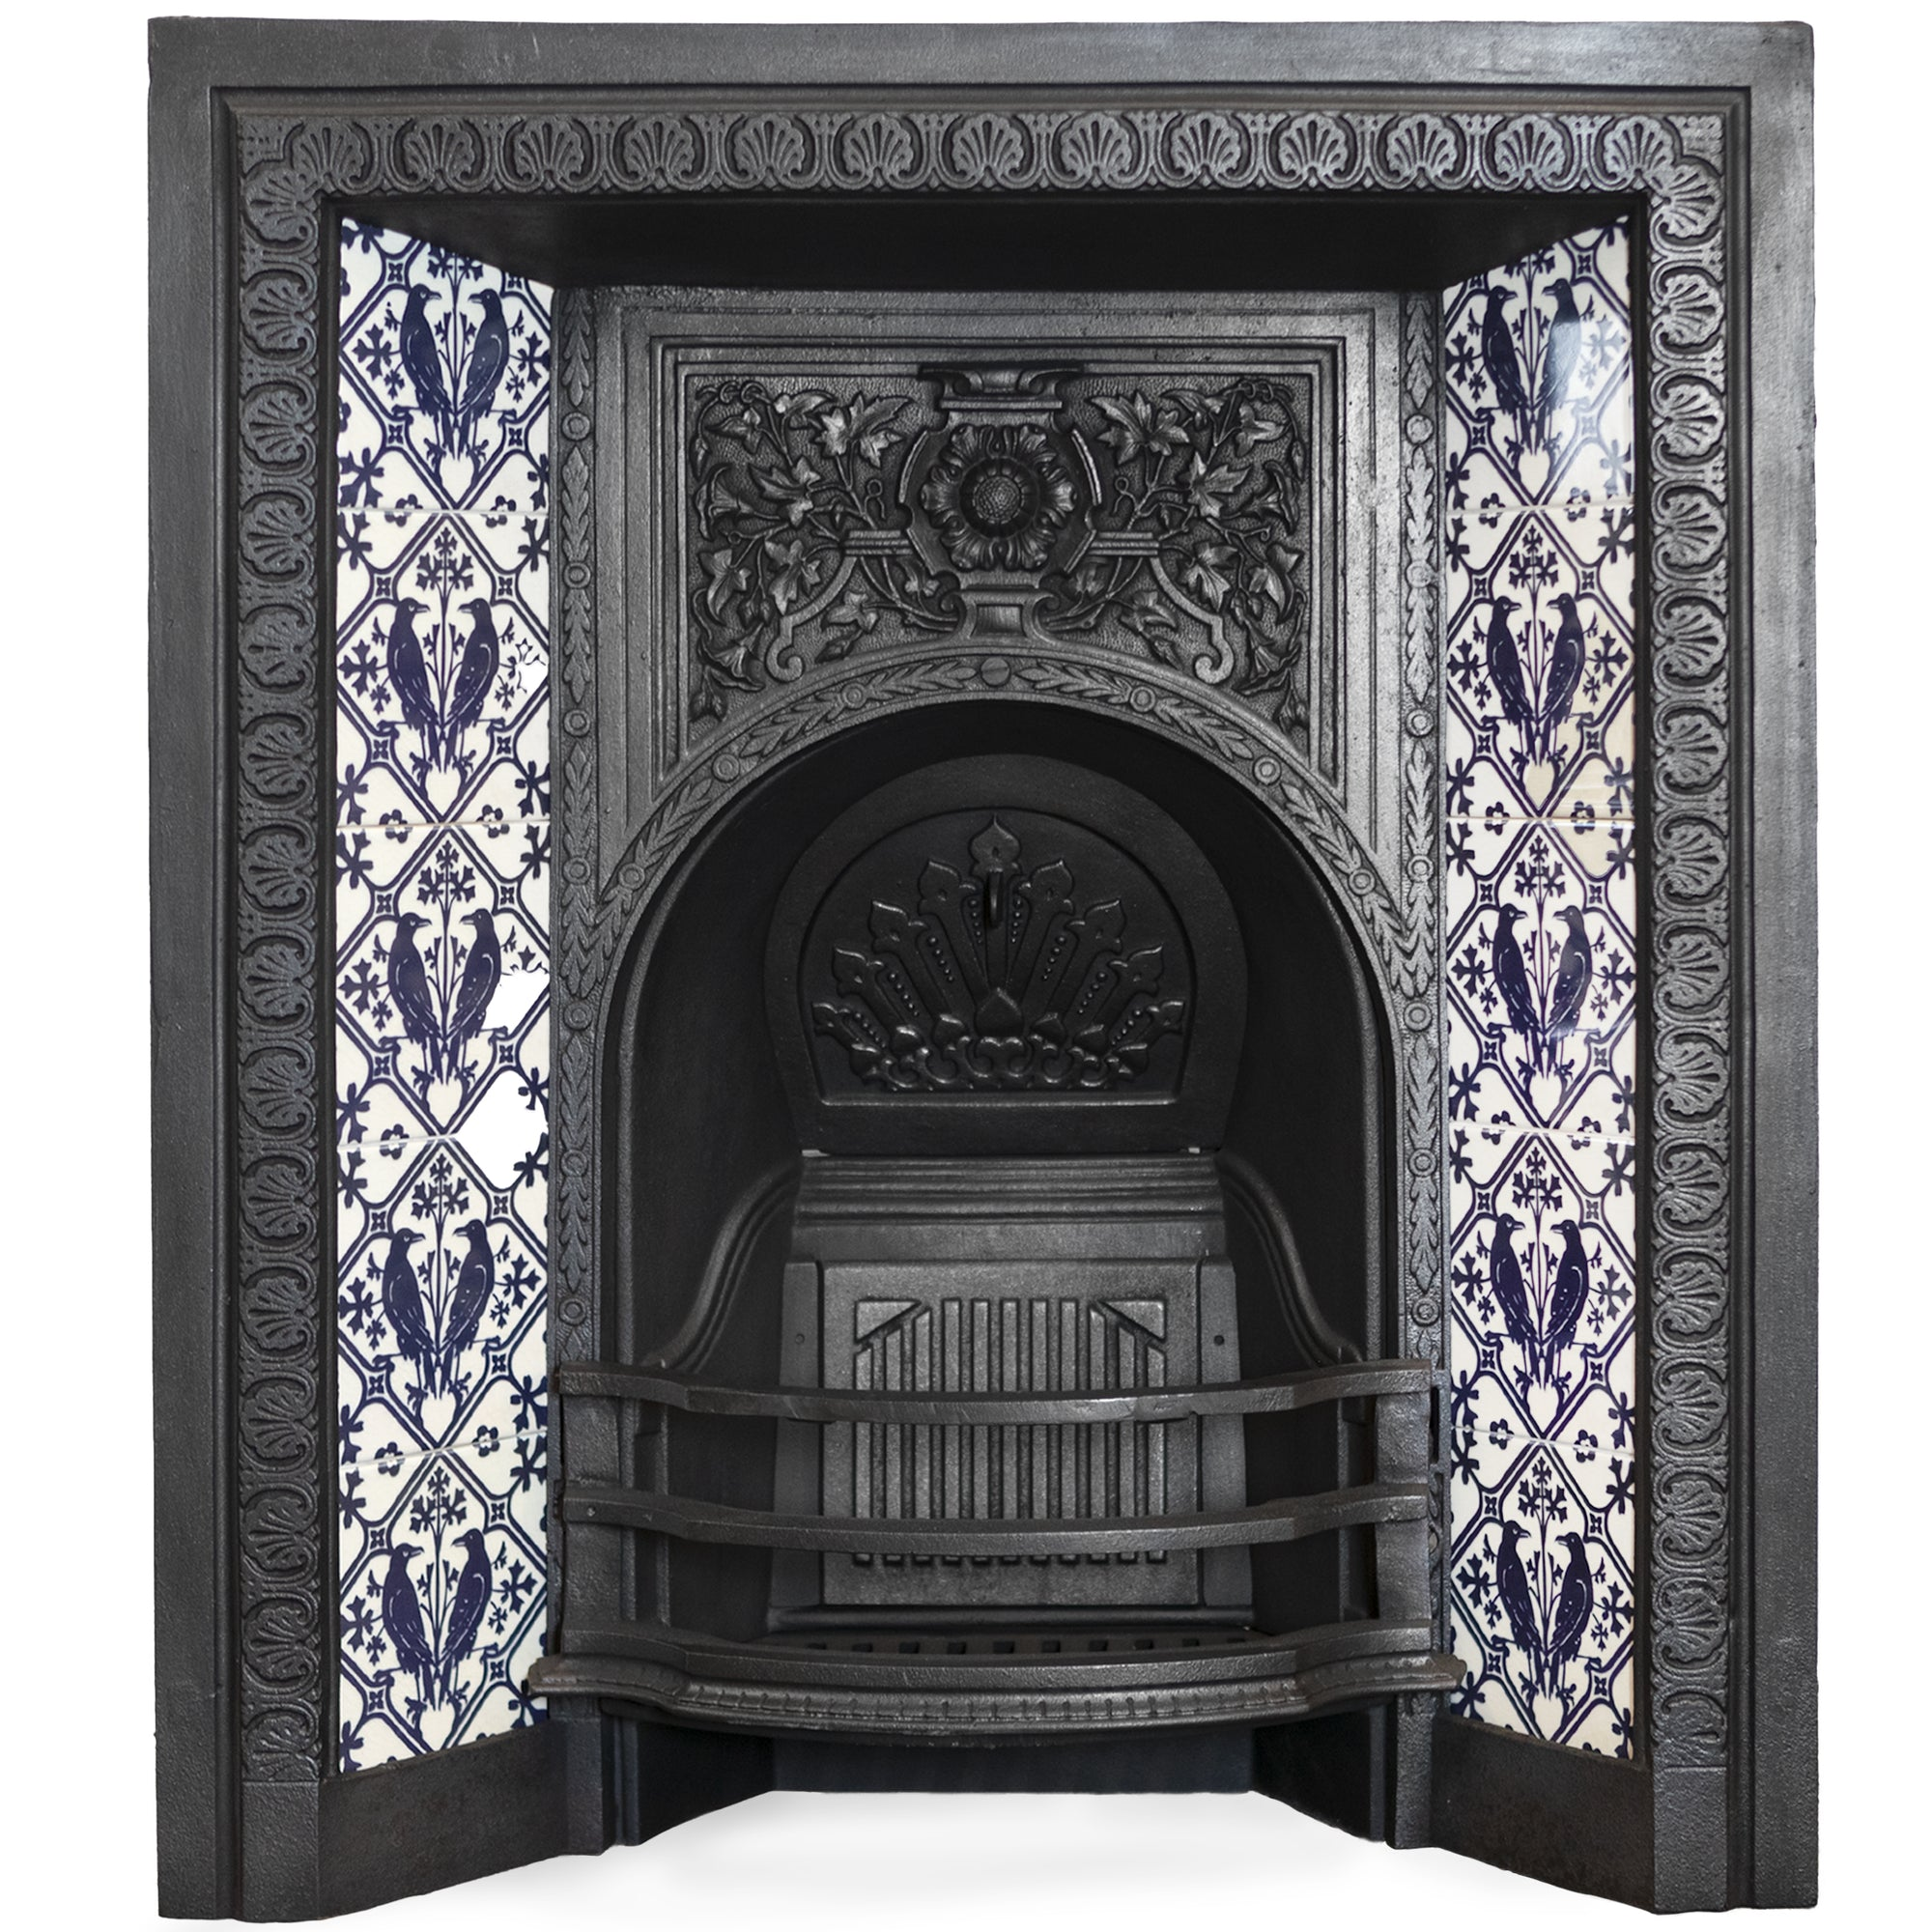 Antique Victorian Cast Iron Fireplace Insert With Raven Tiles | The Architectural Forum